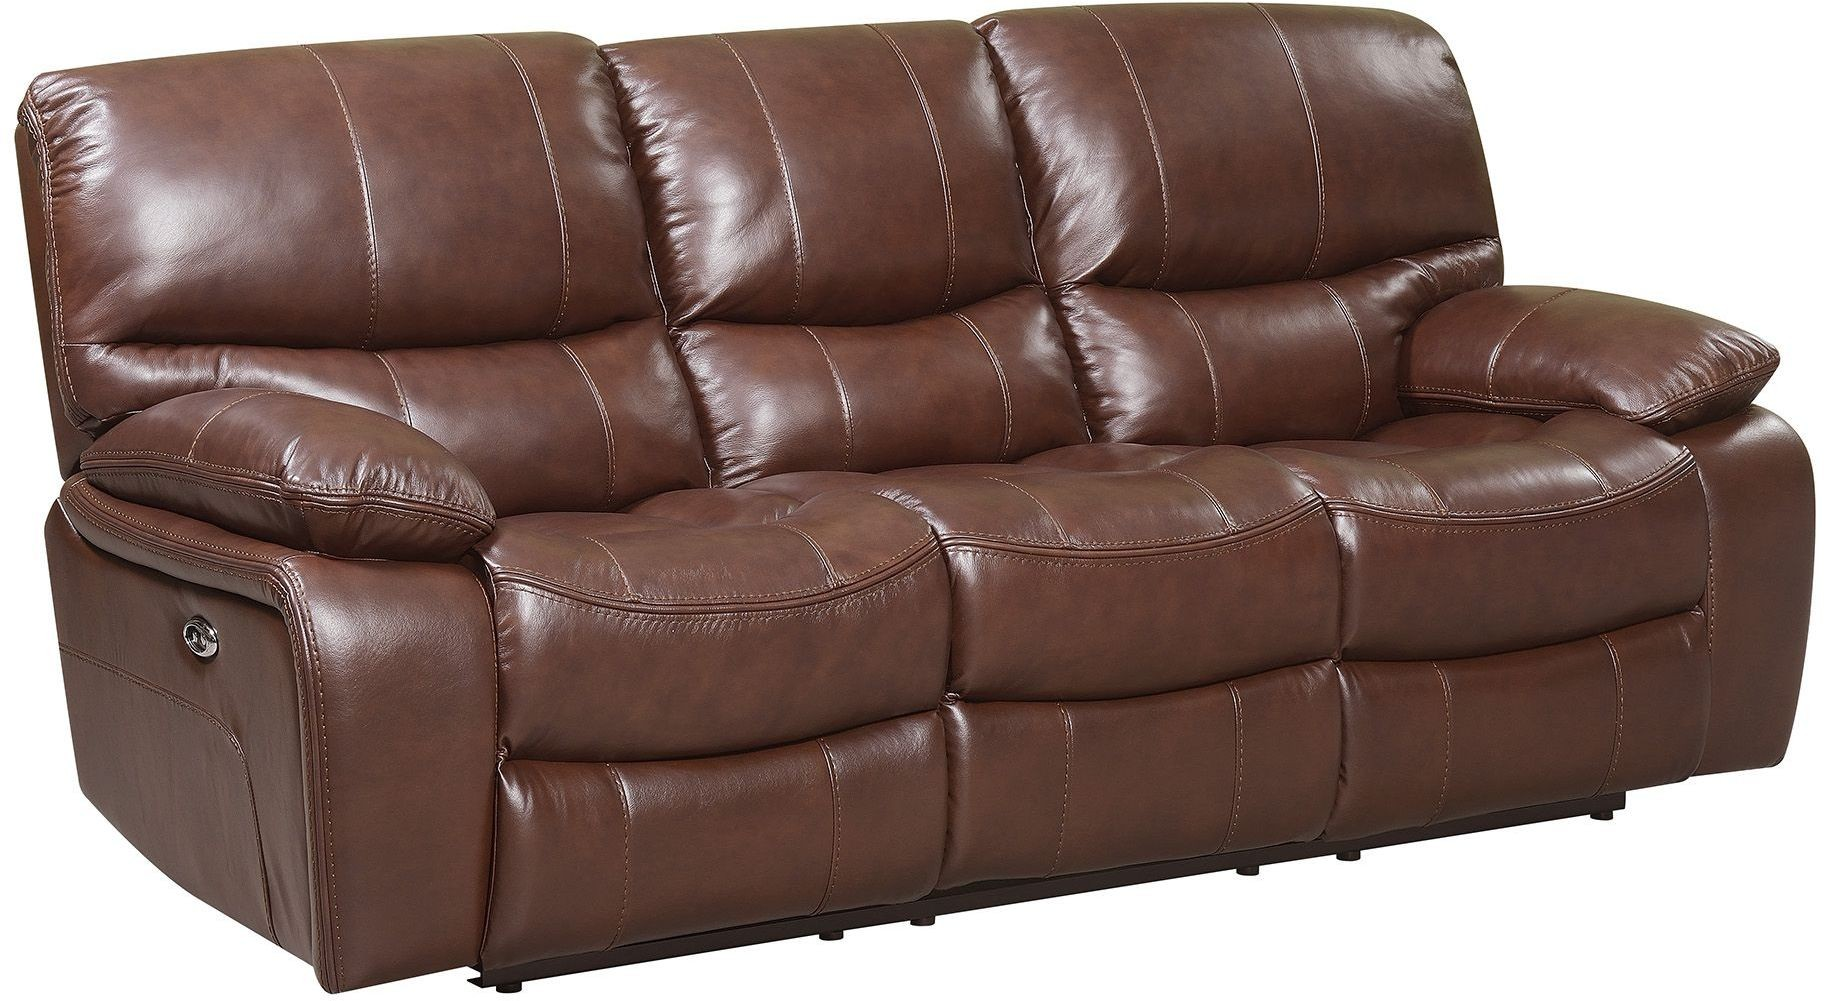 recliner reclining flexsteel mysticpower sofa with threshold width leather height trim power mystic item products latitudes